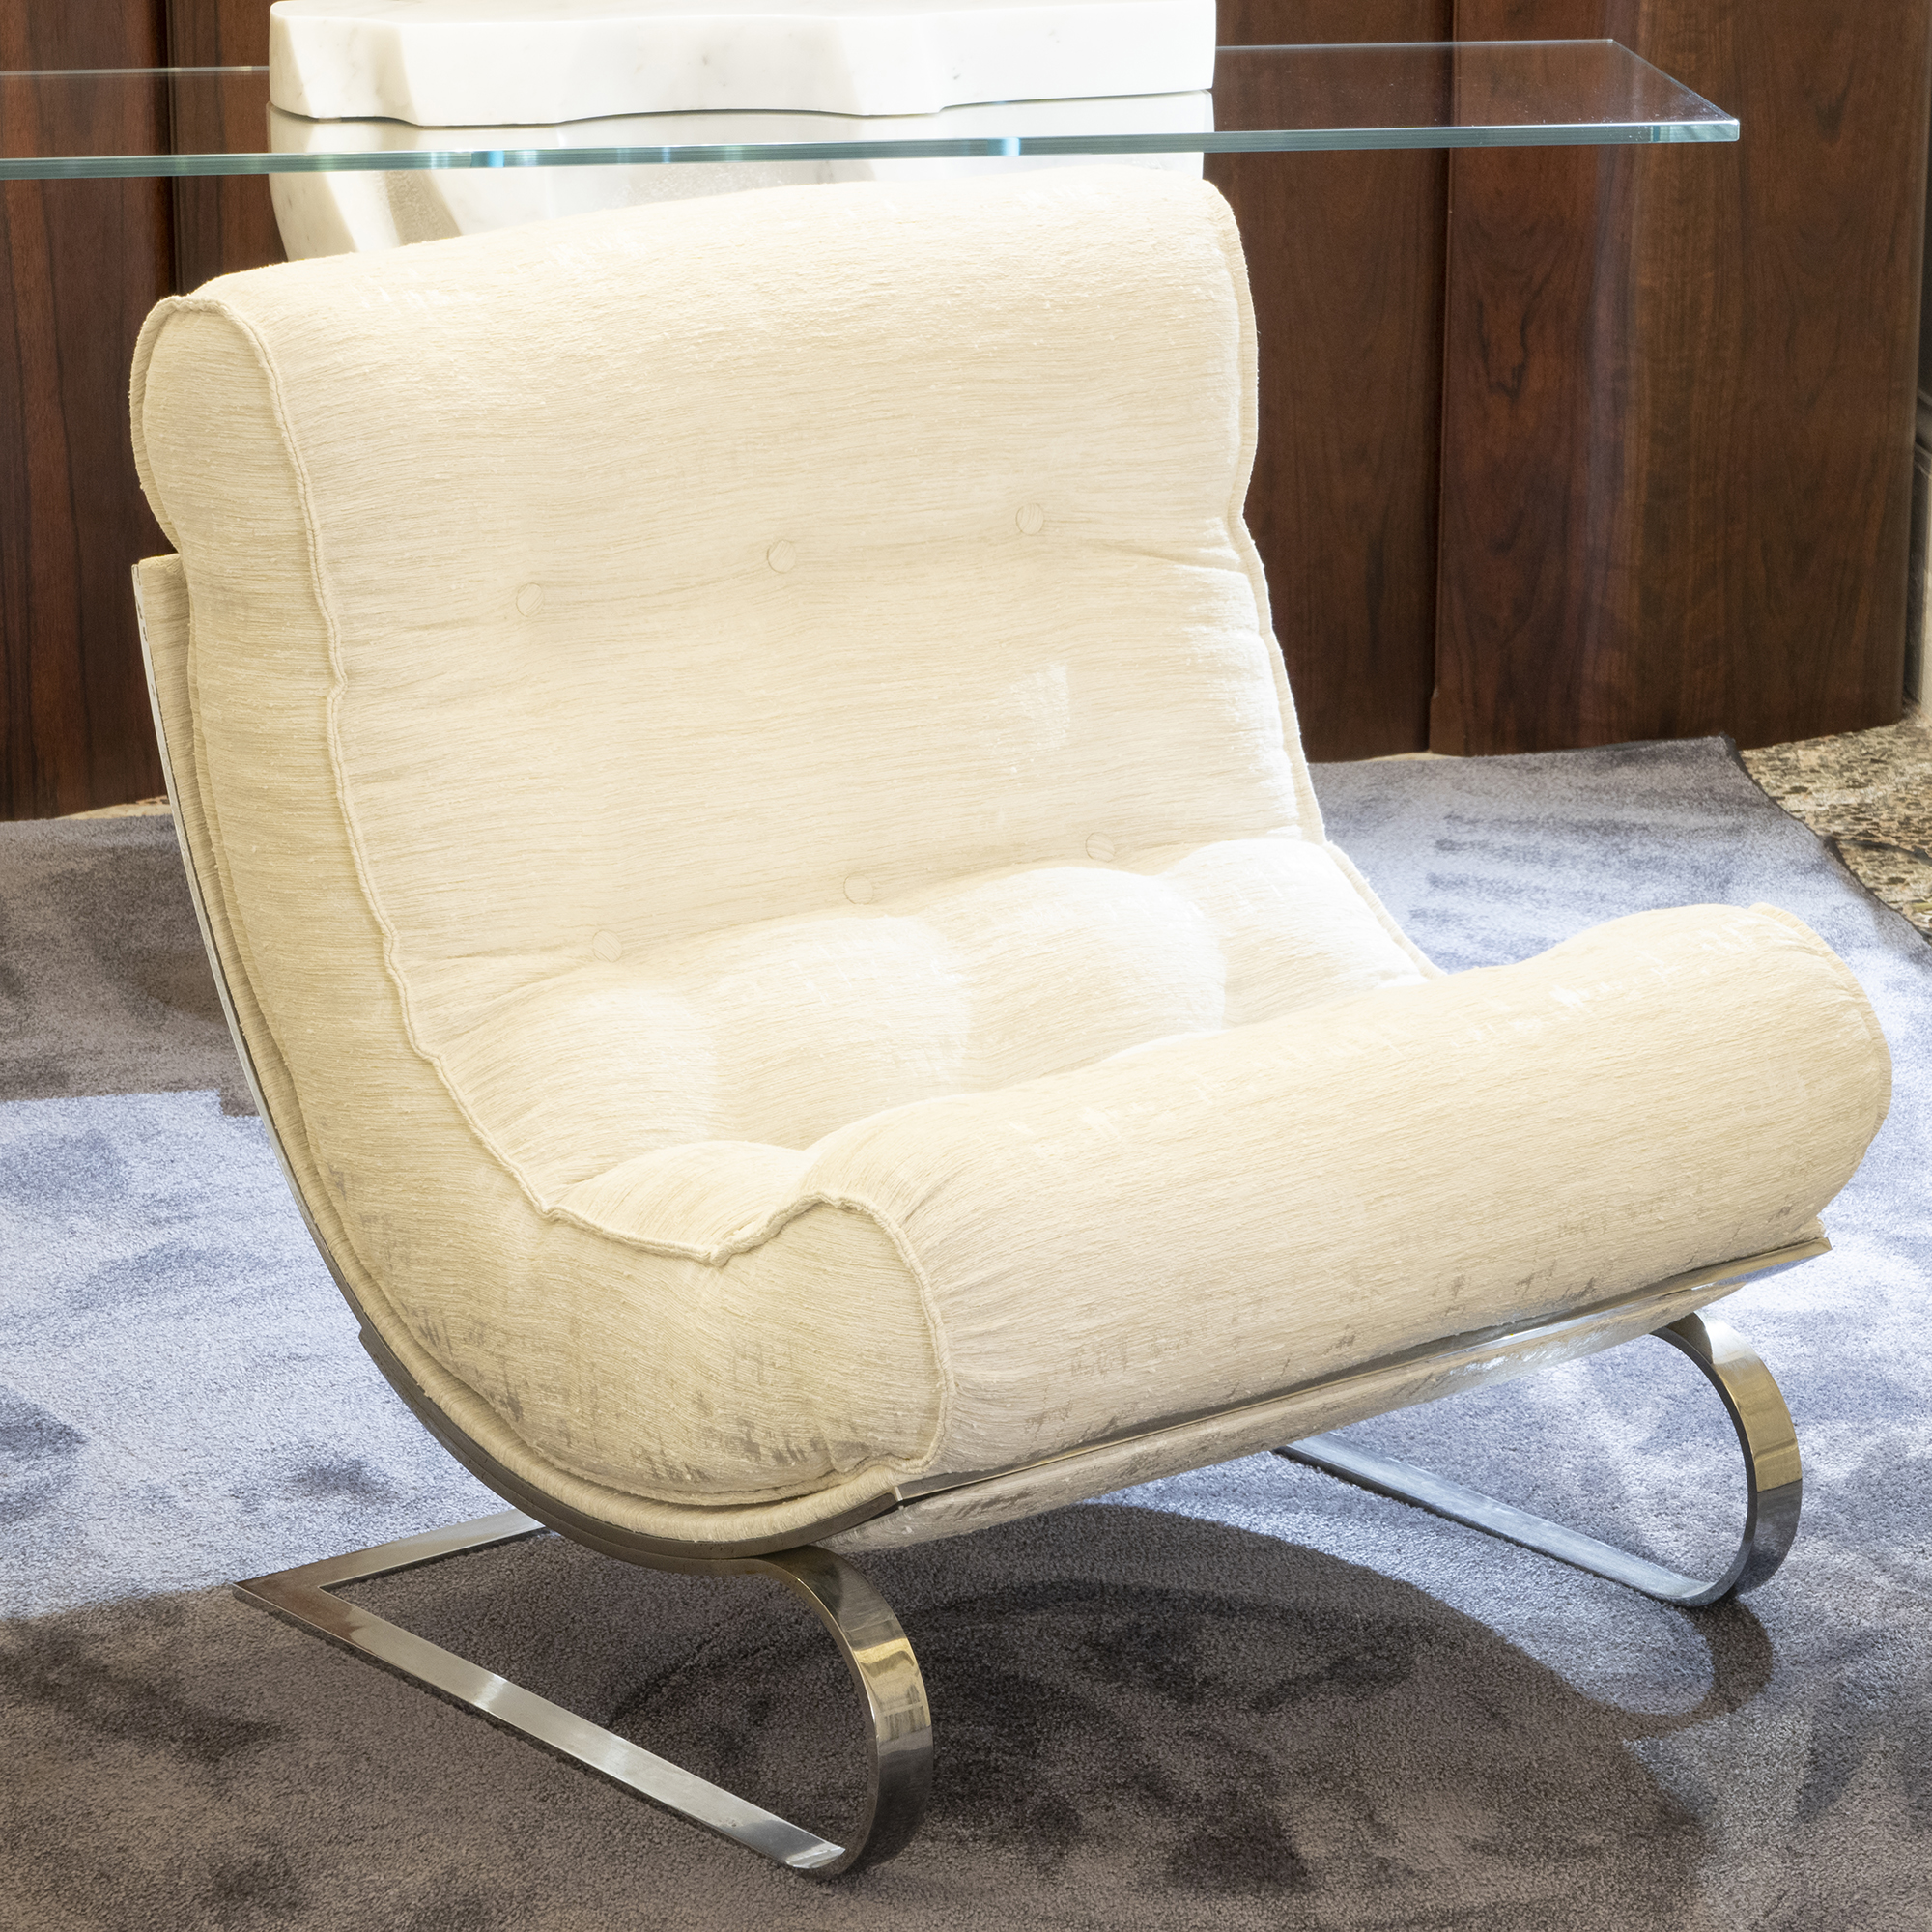 1970s Renato Balestra Lounge Chair